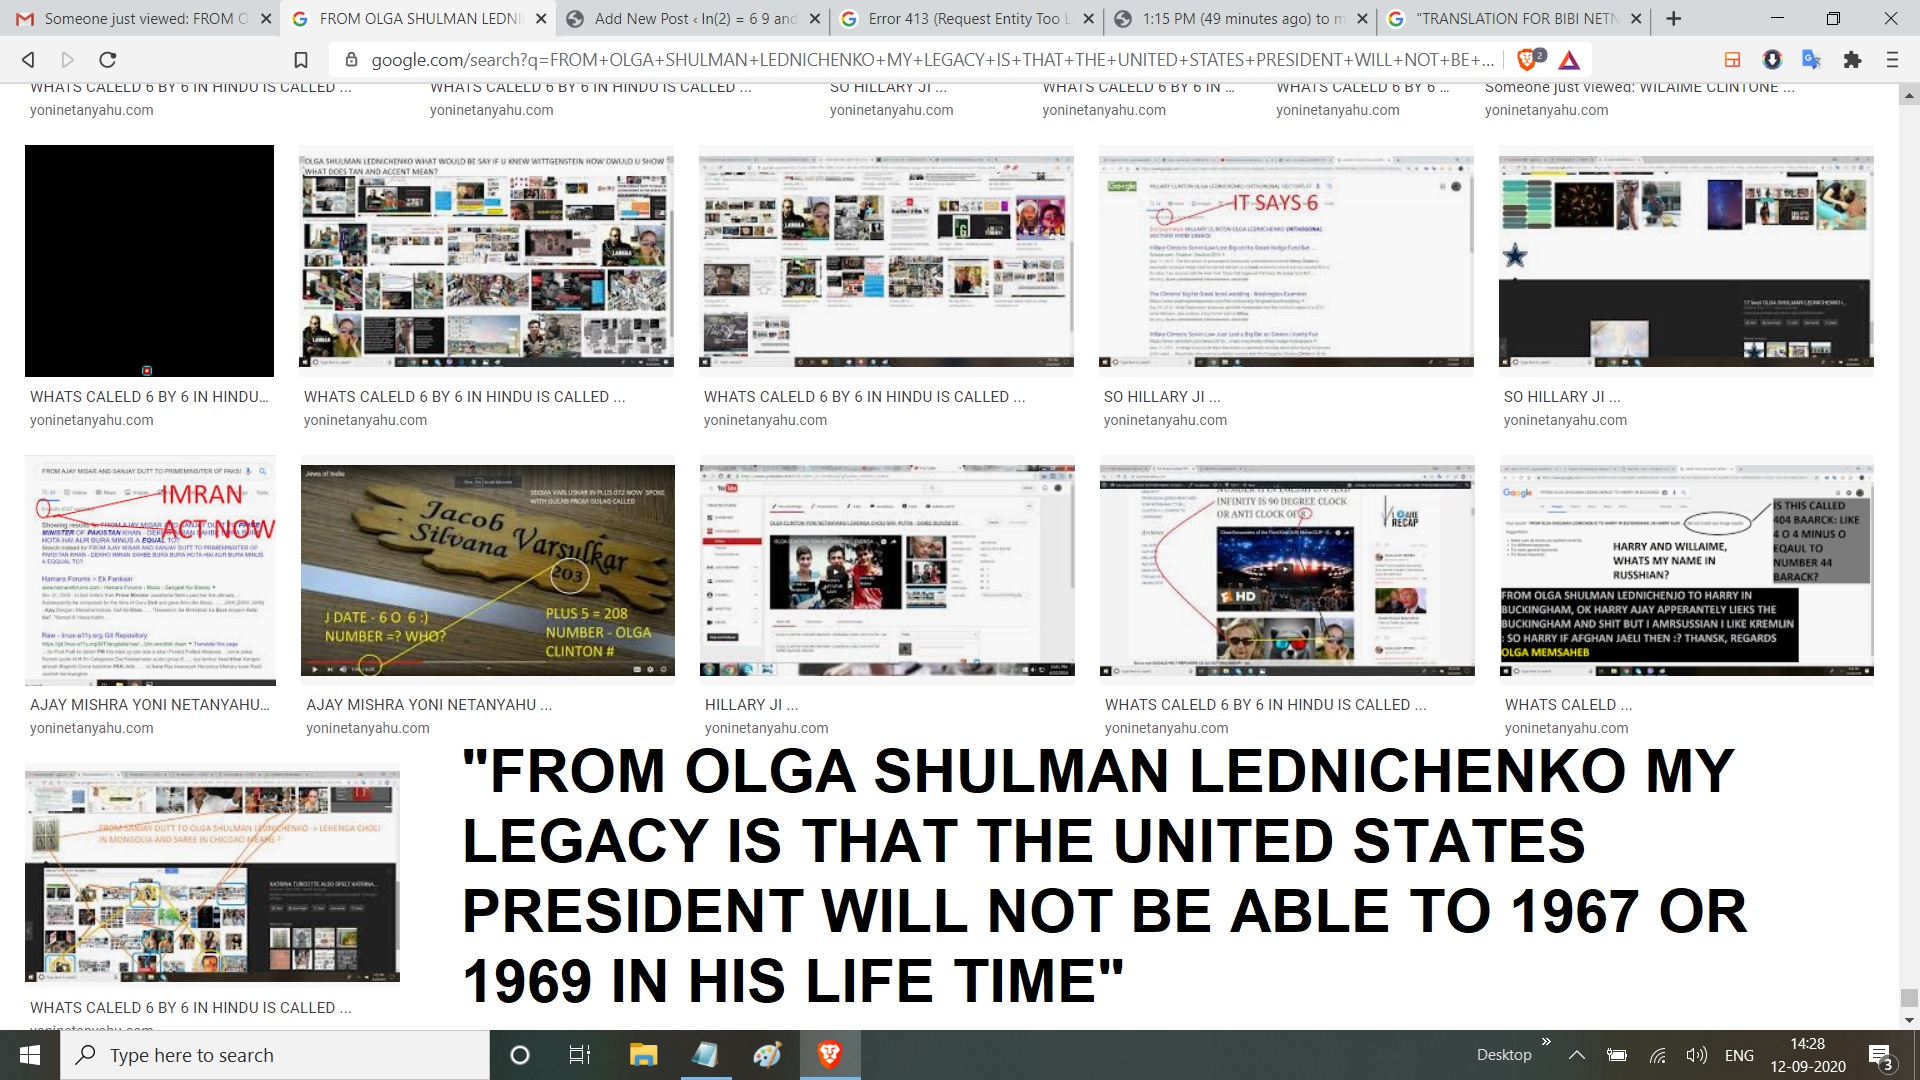 FROM OLGA SHULMAN LEDNICHENKO MY LEGACY IS THAT THE UNITED STATES PRESIDENT WILL NOT BE ABLE TO 1967 OR 1969 IN HIS LIFE TIME